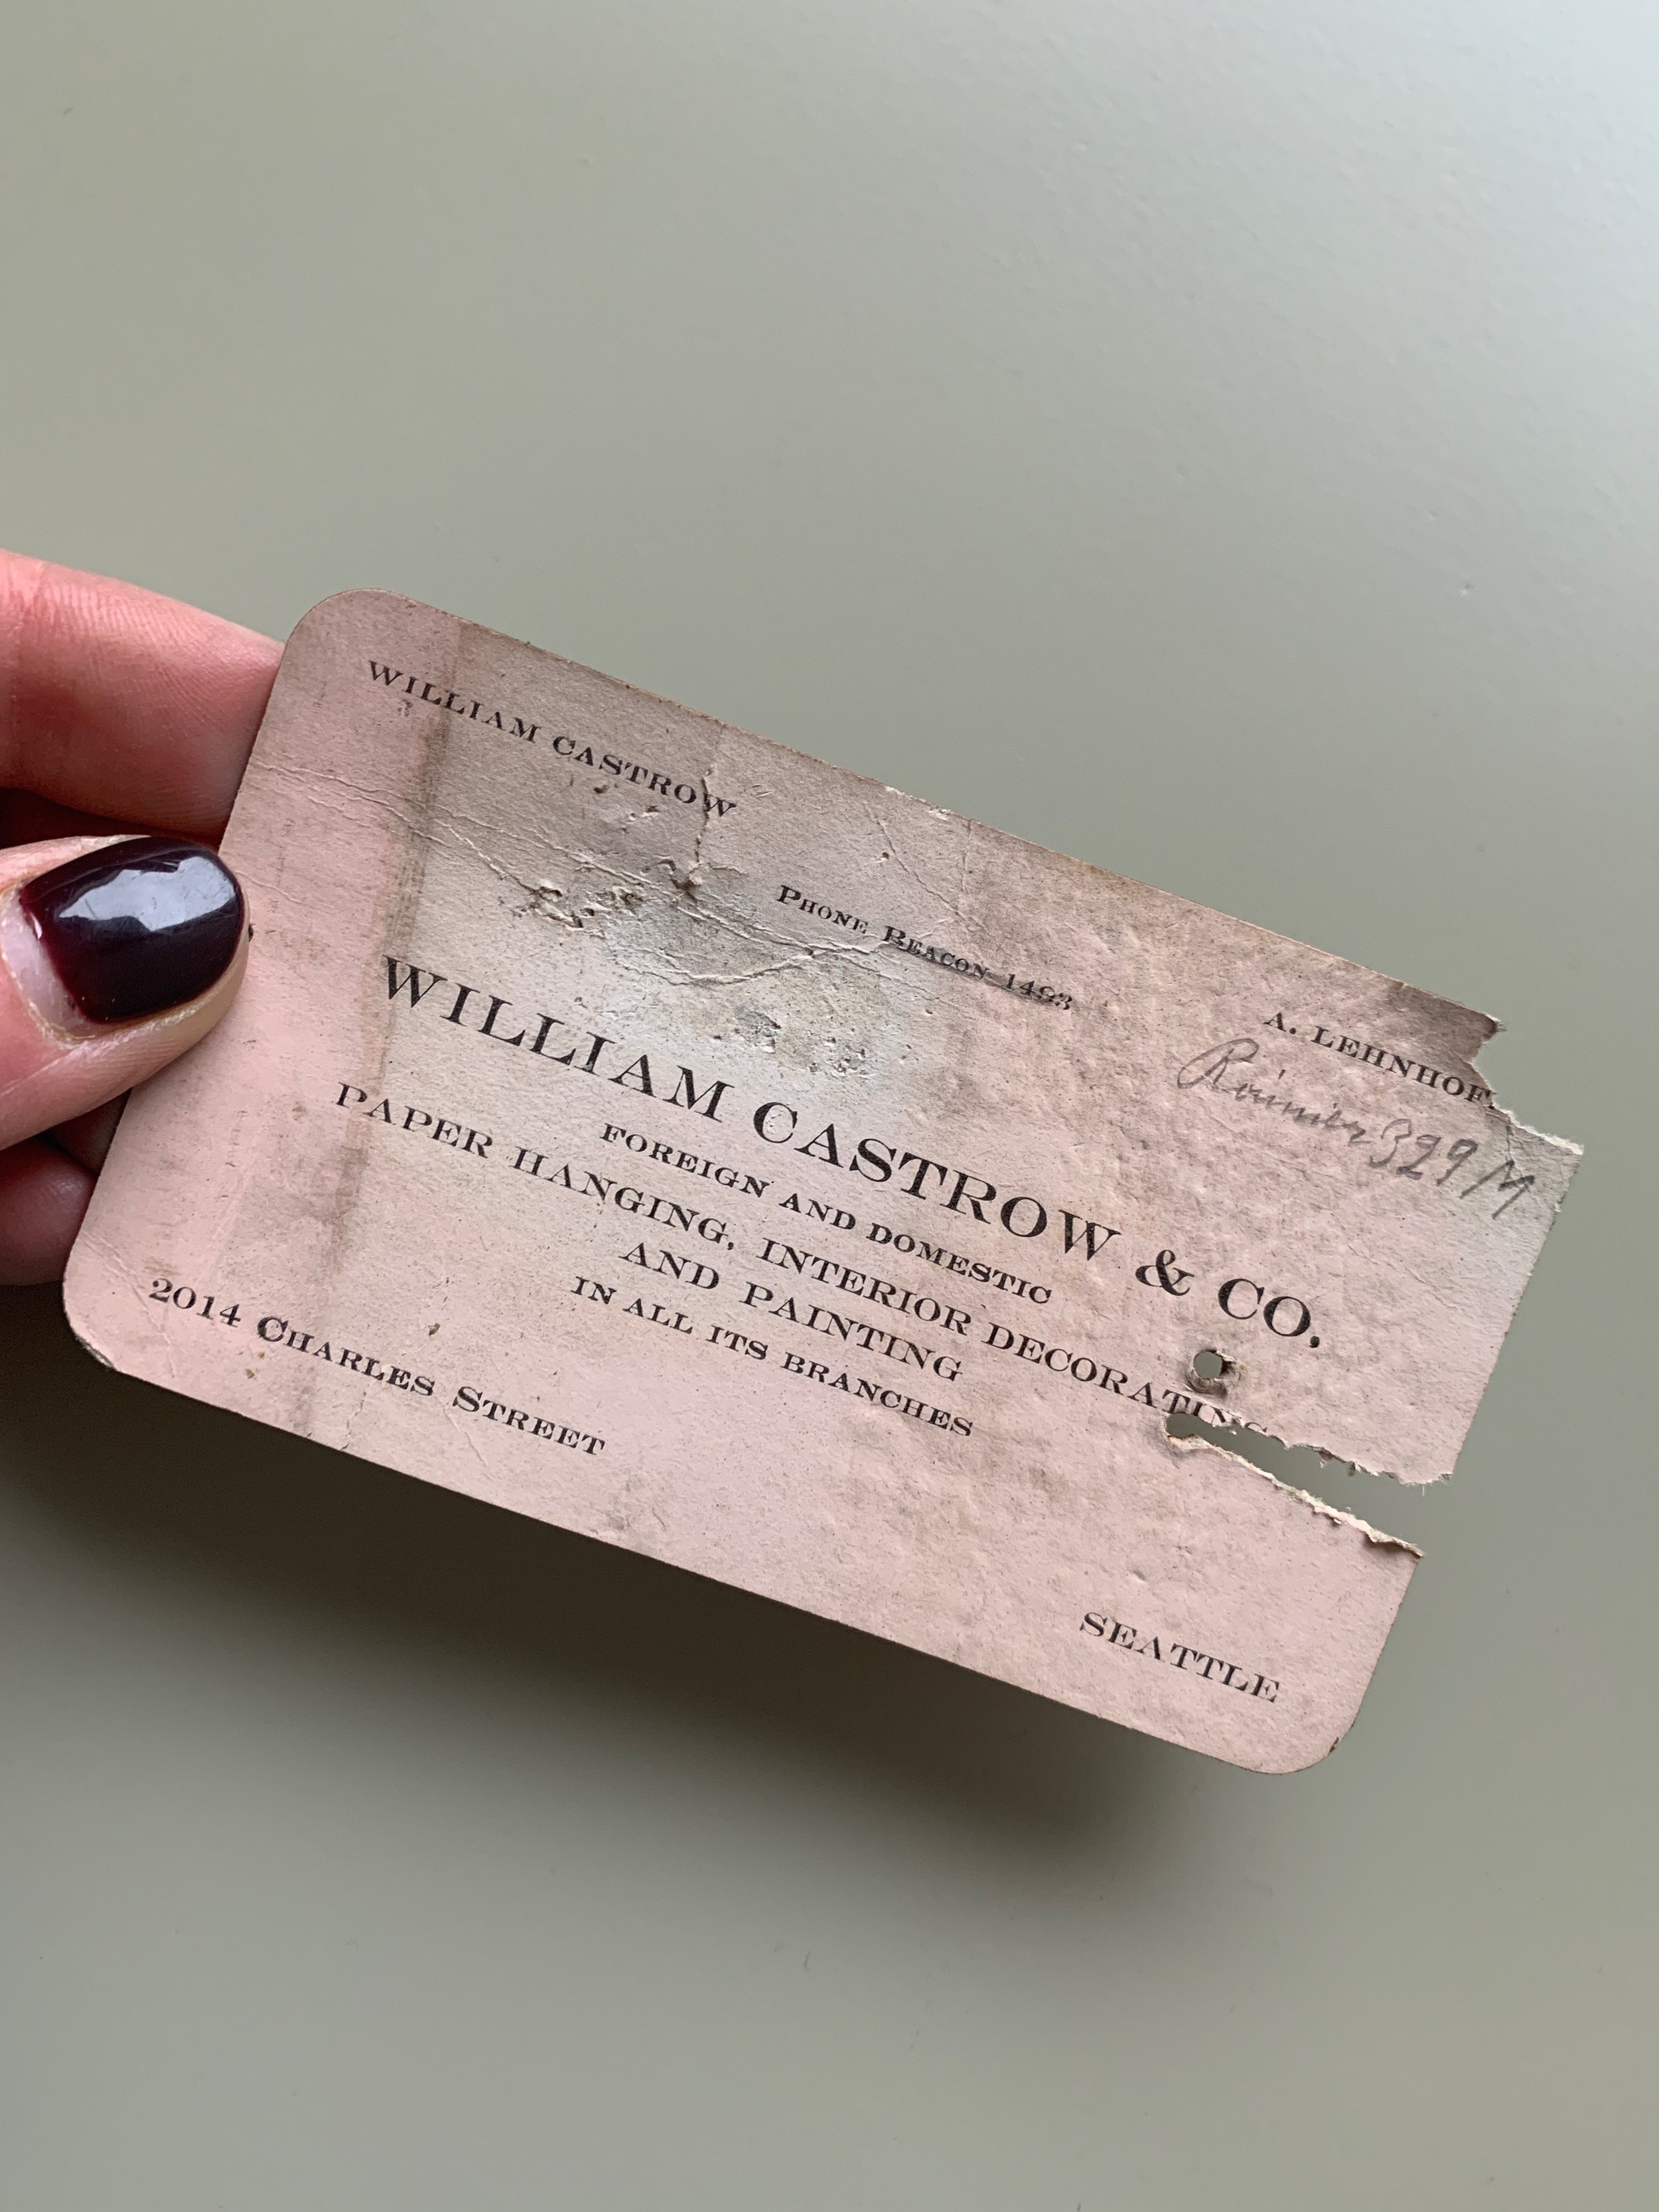 The business card we found within the walls | Photograph by Lauren Caron 2019 ©